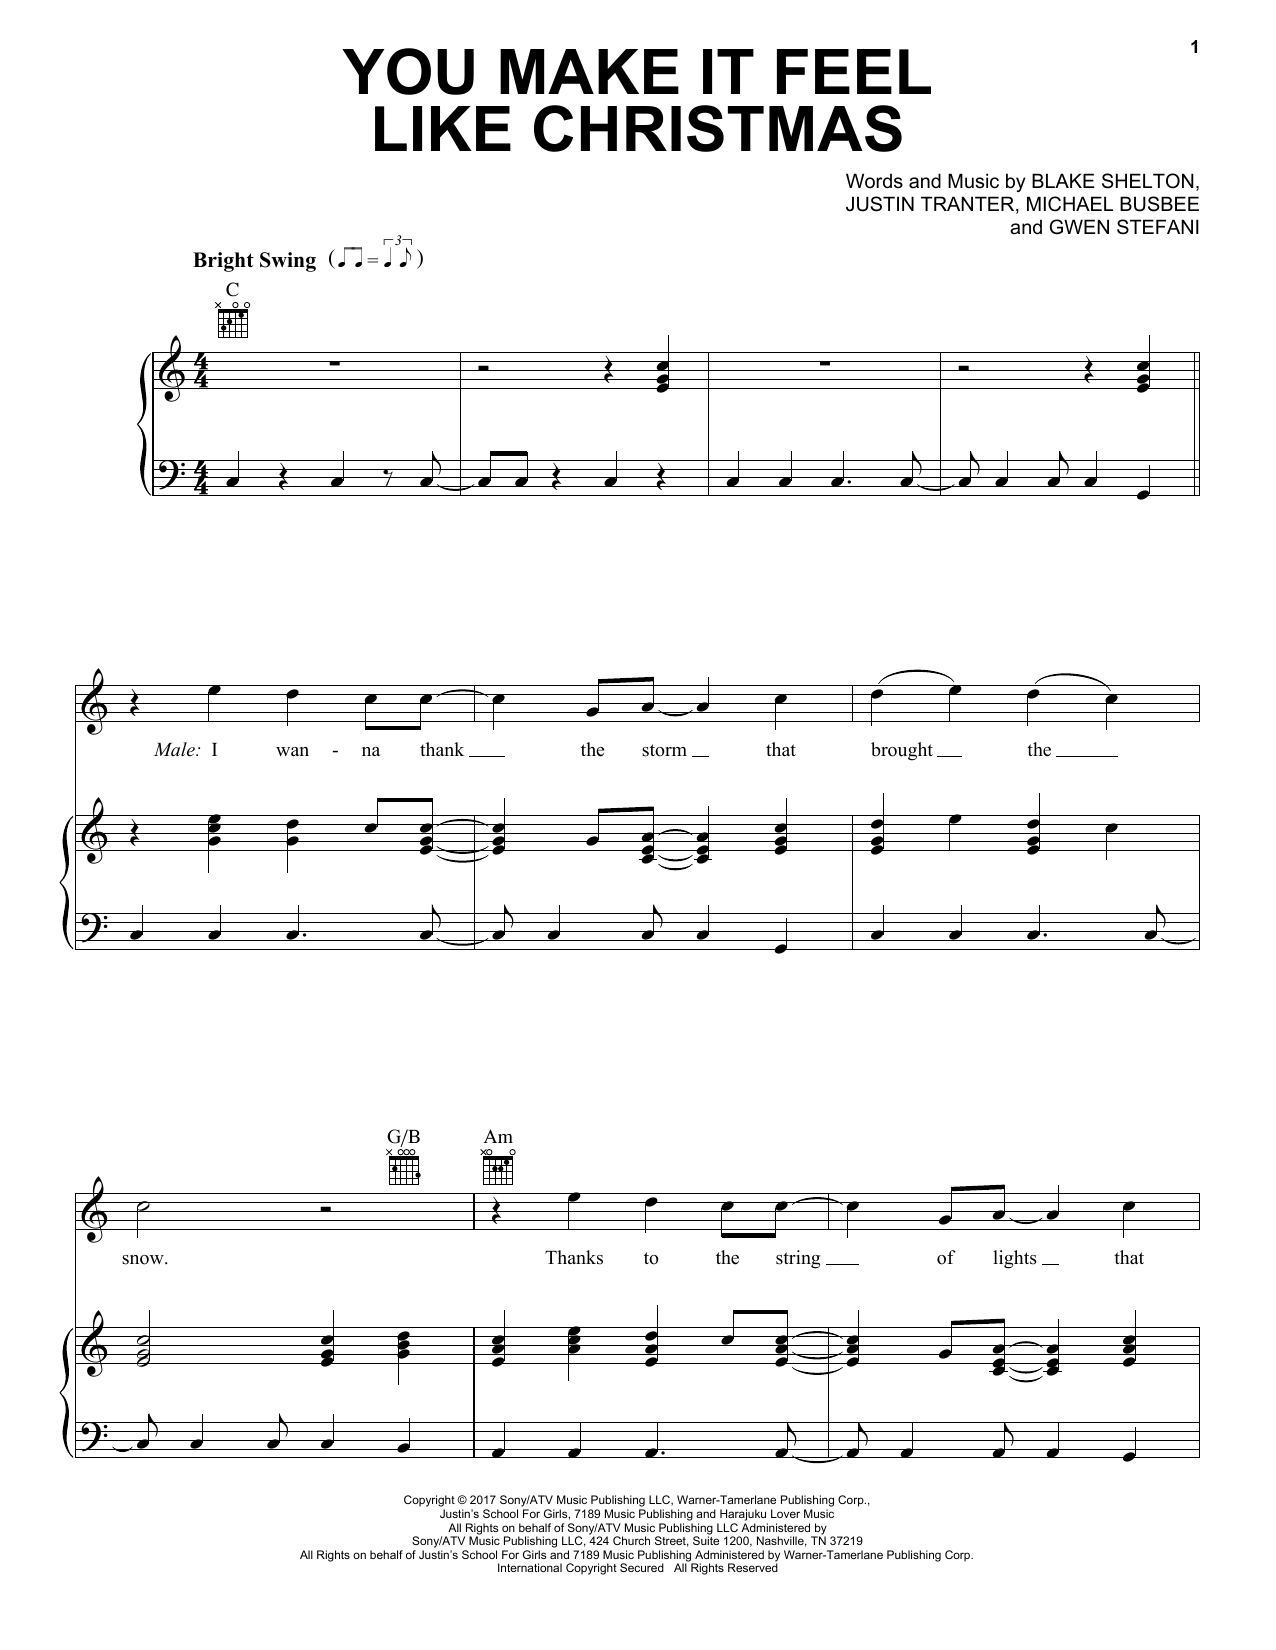 You Make It Feel Like Christmas - Print Sheet Music Now